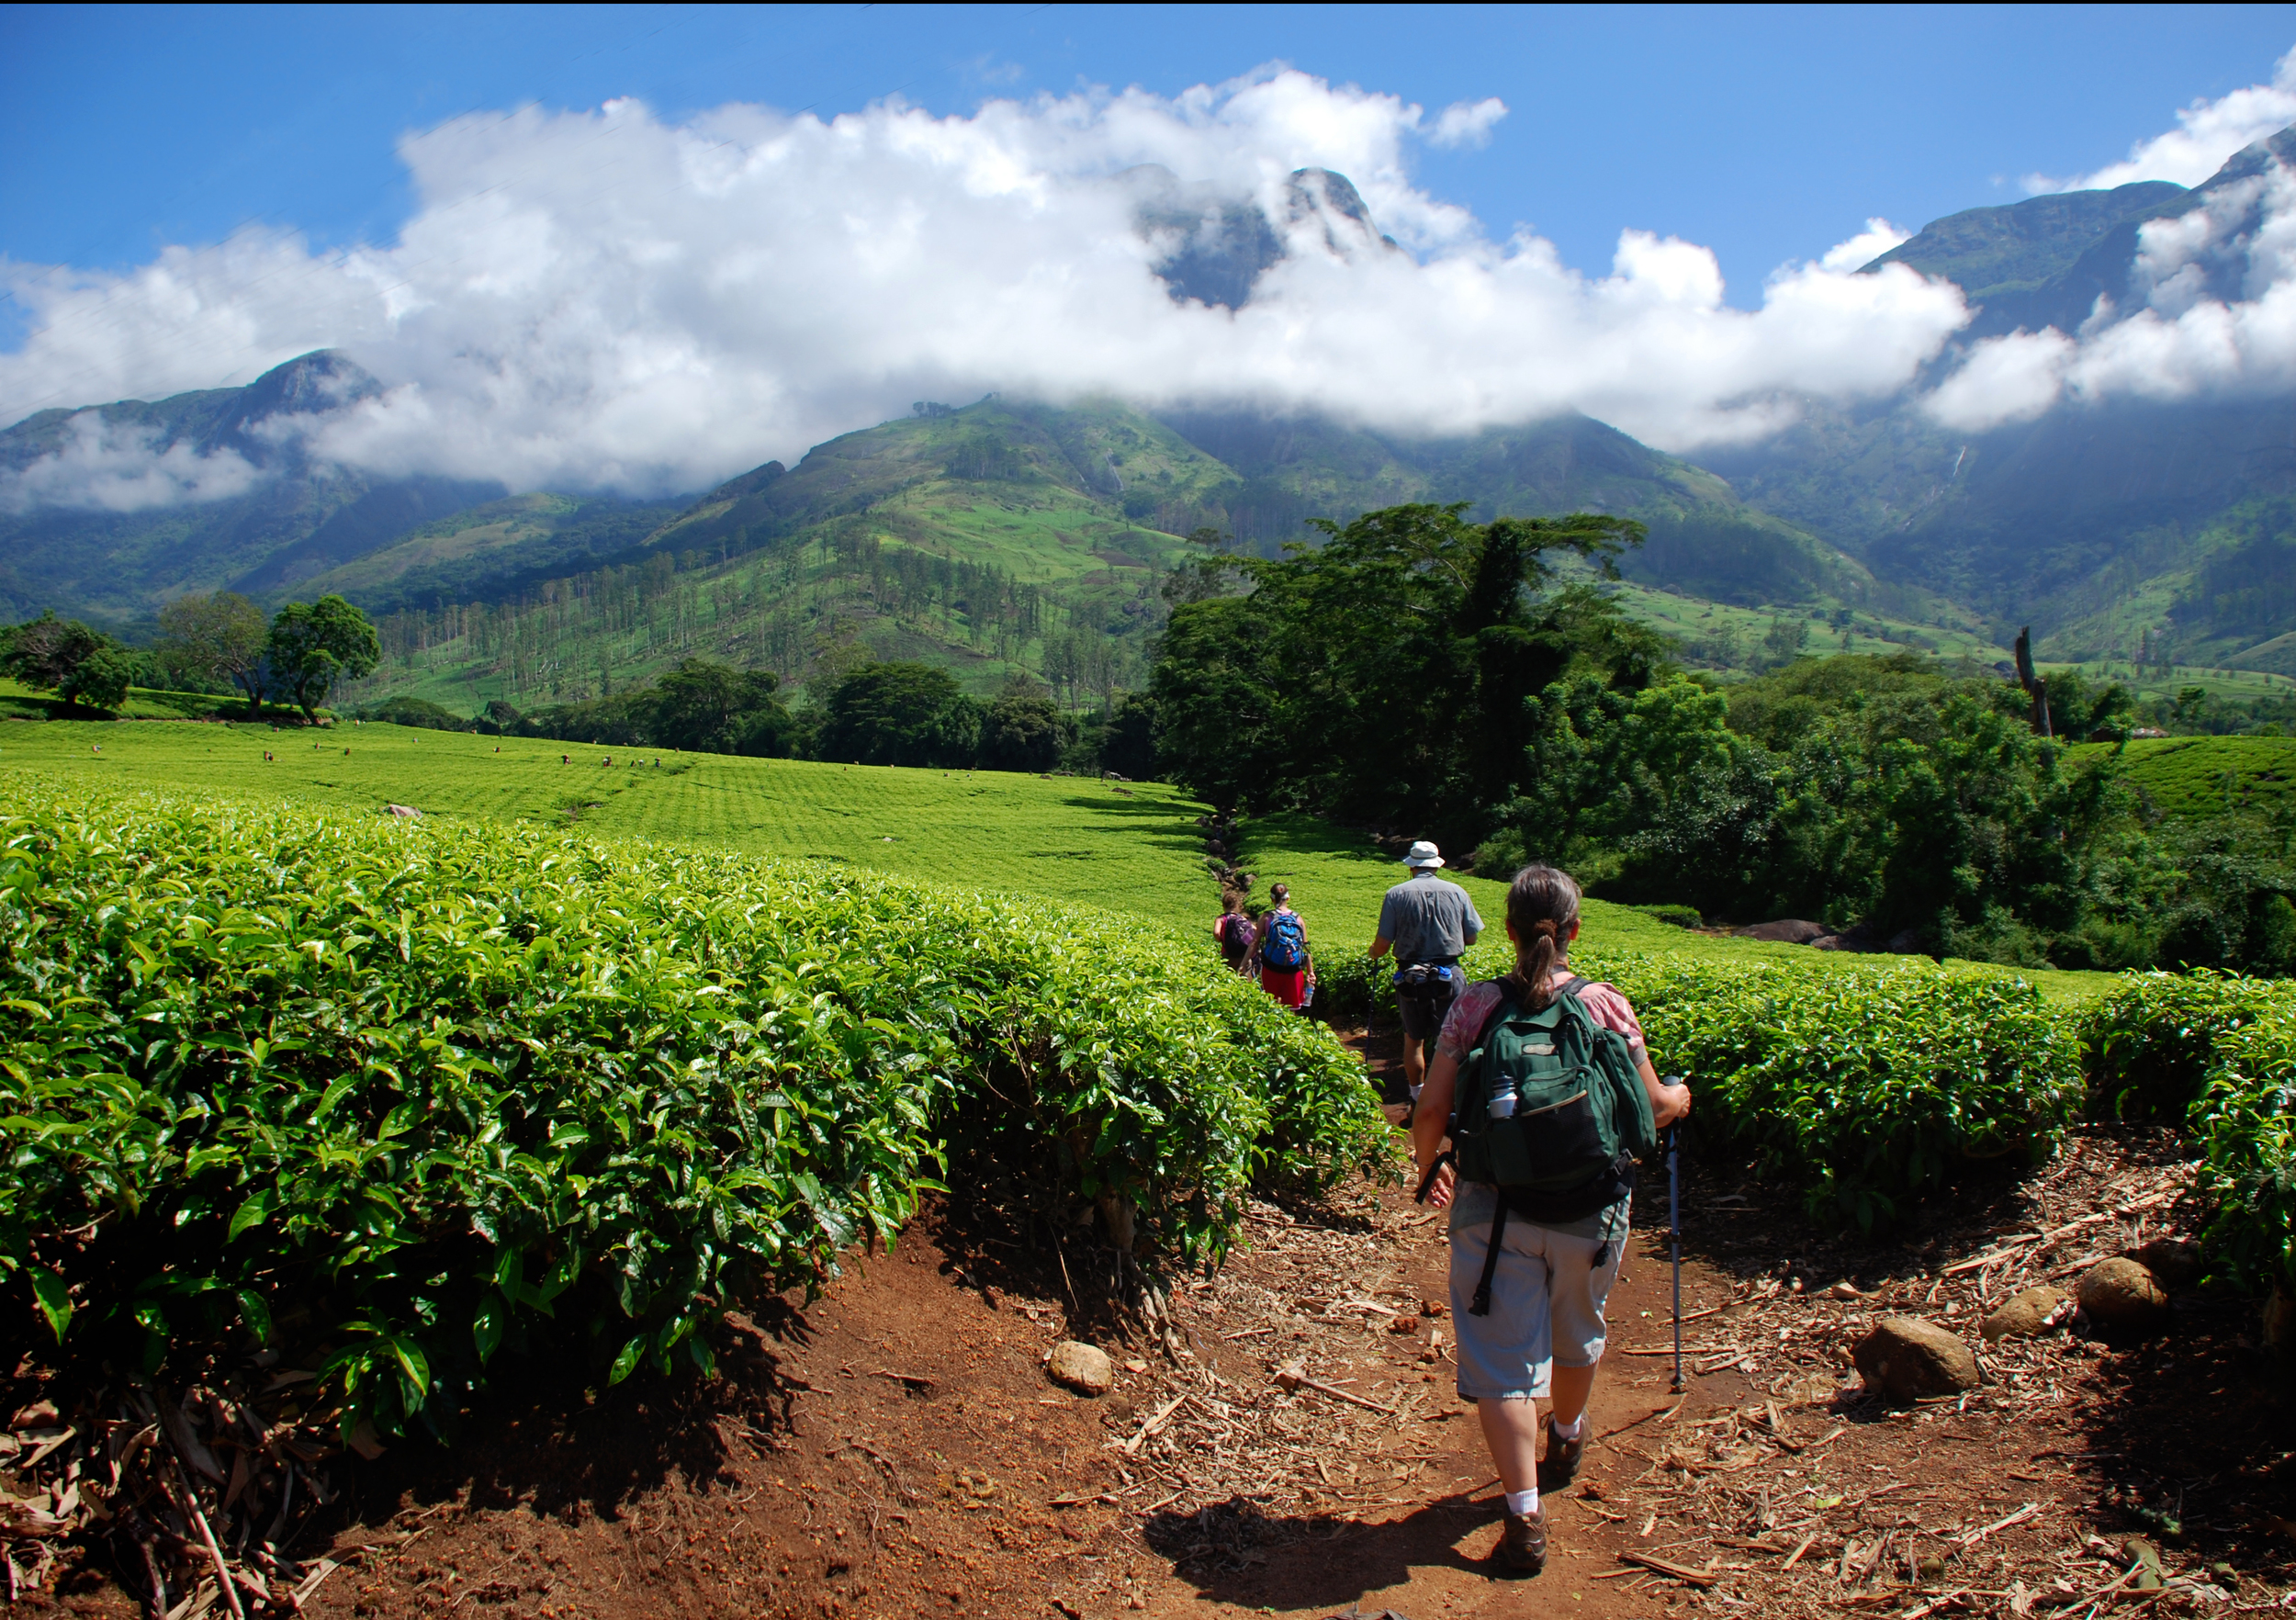 Starting our climb from the tea fields in the valley